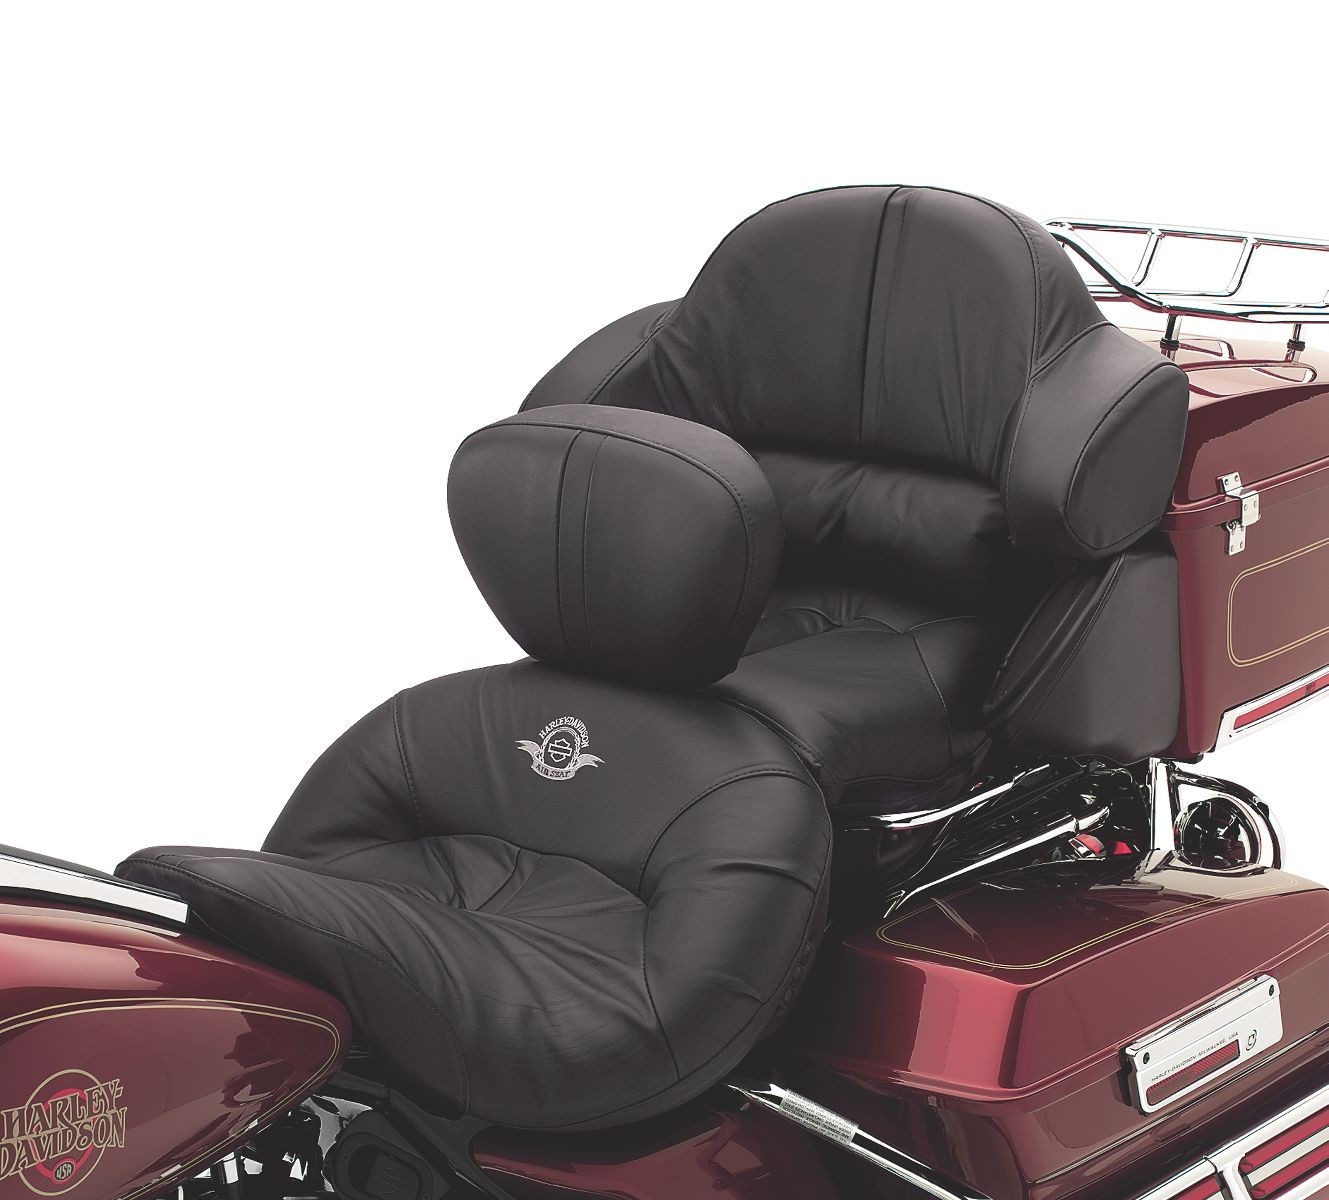 52333 97e Harley Davidson Road Zeppelin Air Adjustable Seat Leather Protectant Chester